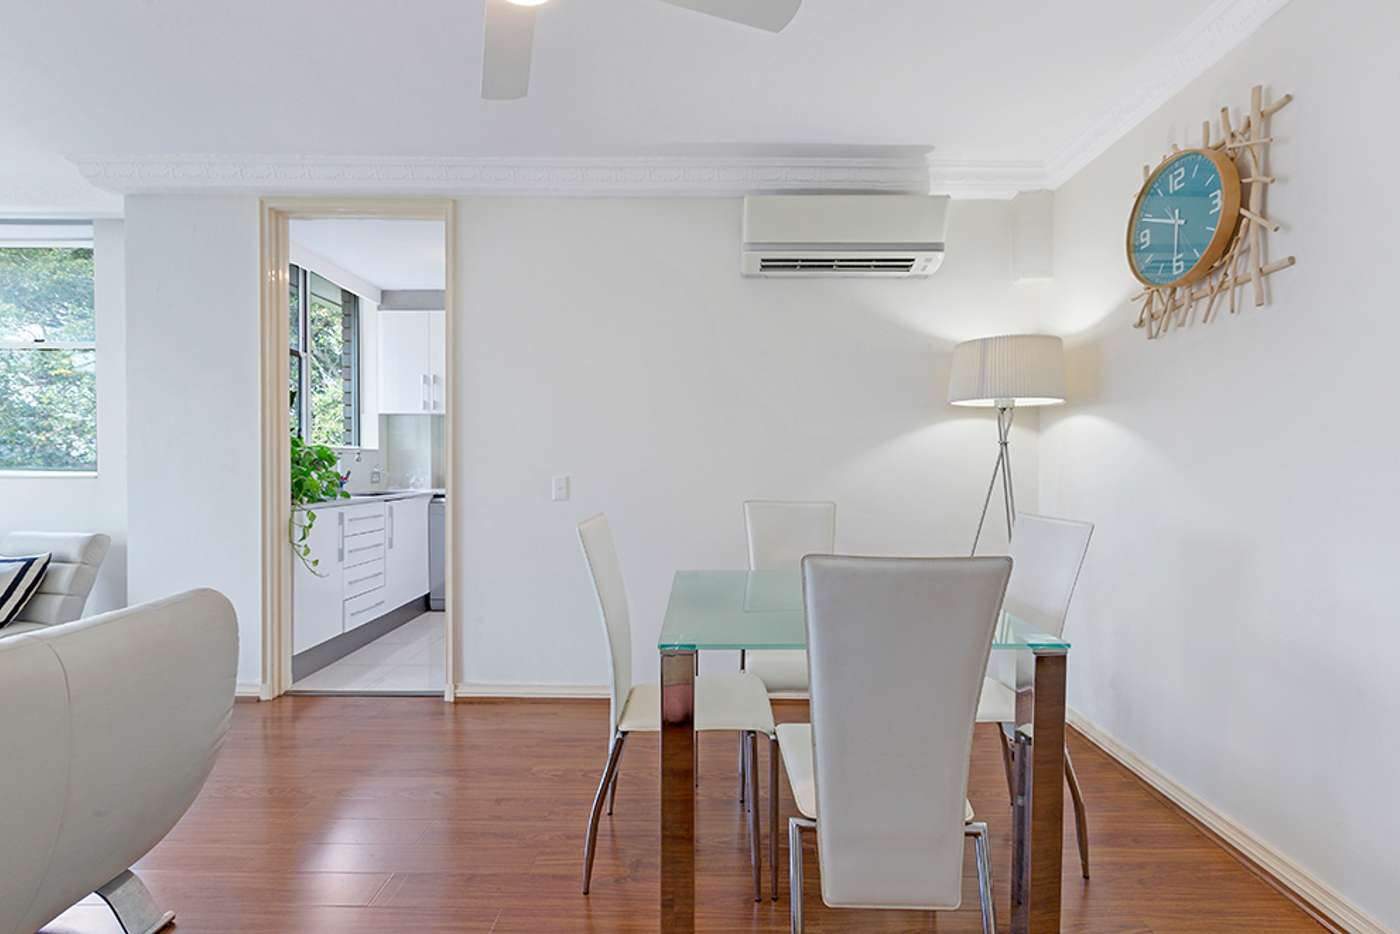 Fifth view of Homely apartment listing, 8/25 Harriette Street, Kurraba Point NSW 2089